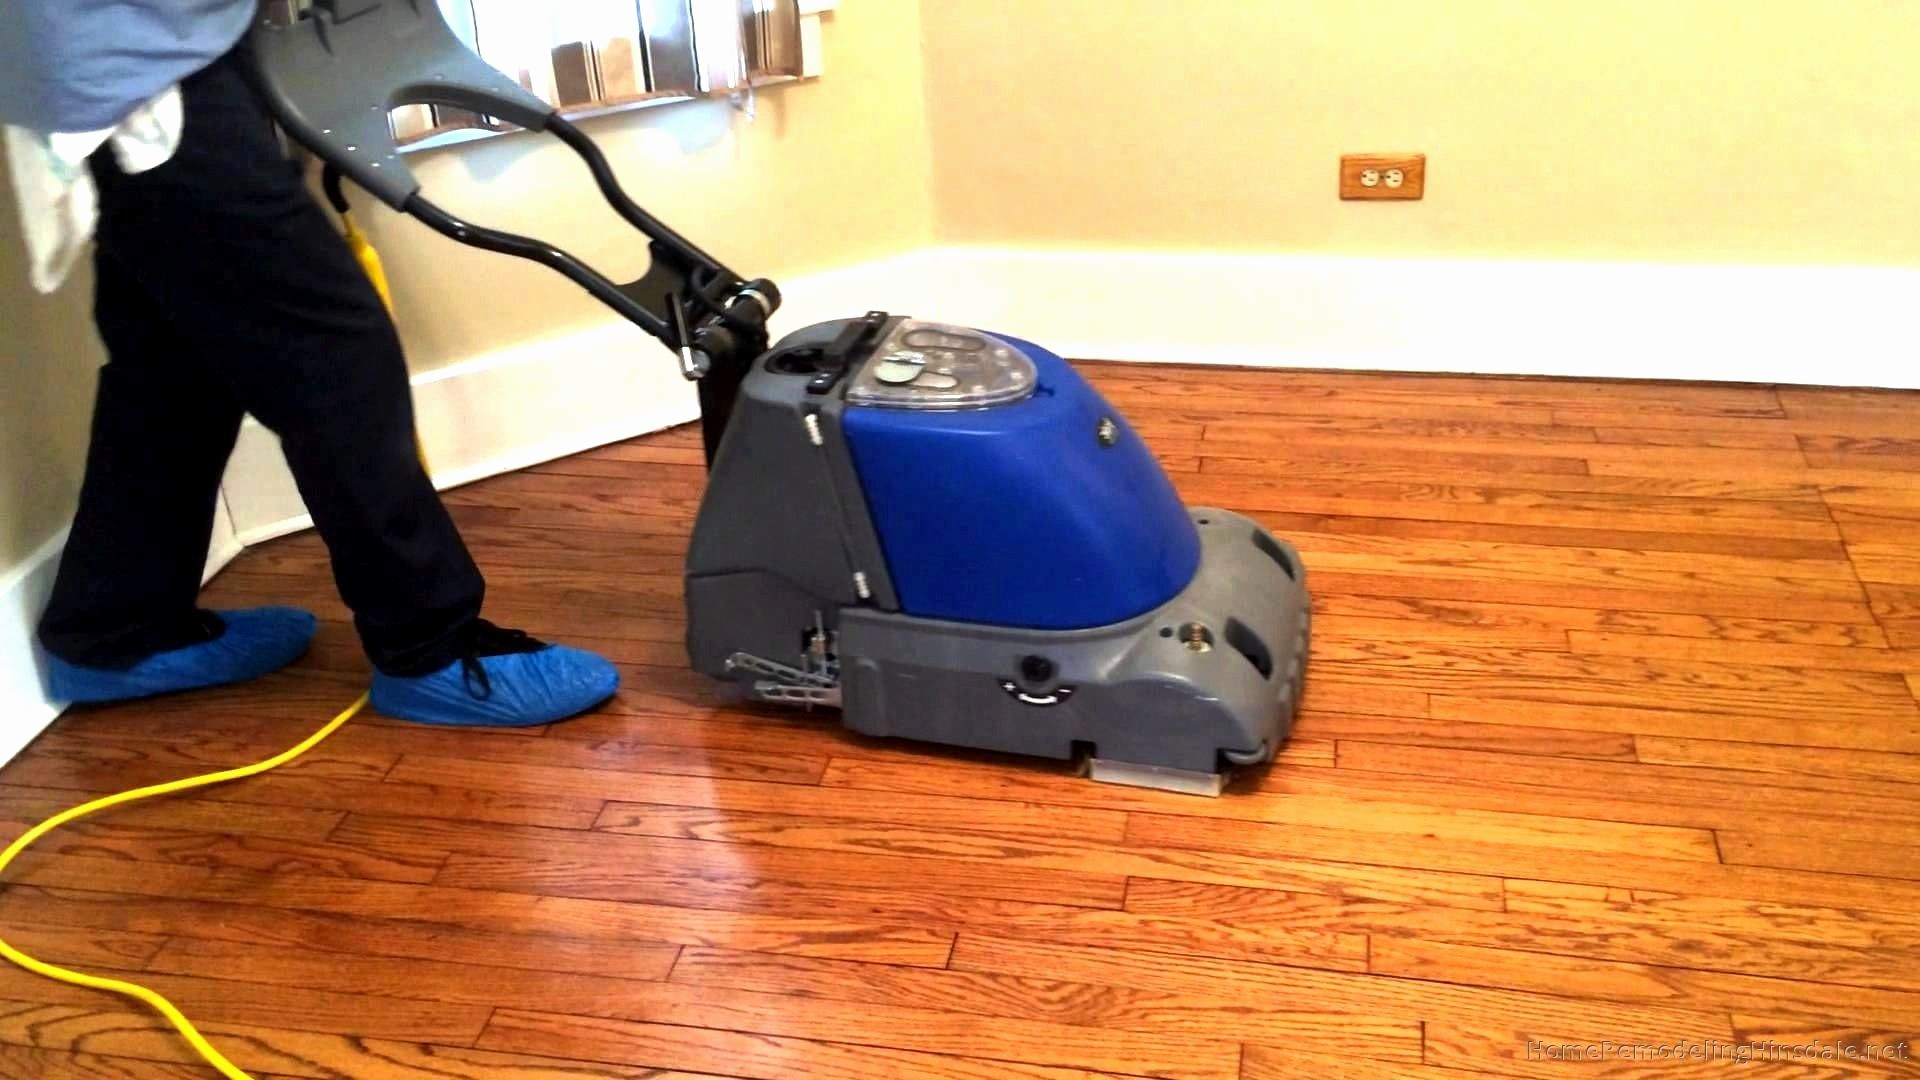 shark hardwood floor cleaner machine of 17 unique shark hardwood floor cleaner photograph dizpos com throughout shark hardwood floor cleaner new 50 lovely bissell tile floor cleaner 50 s pics of 17